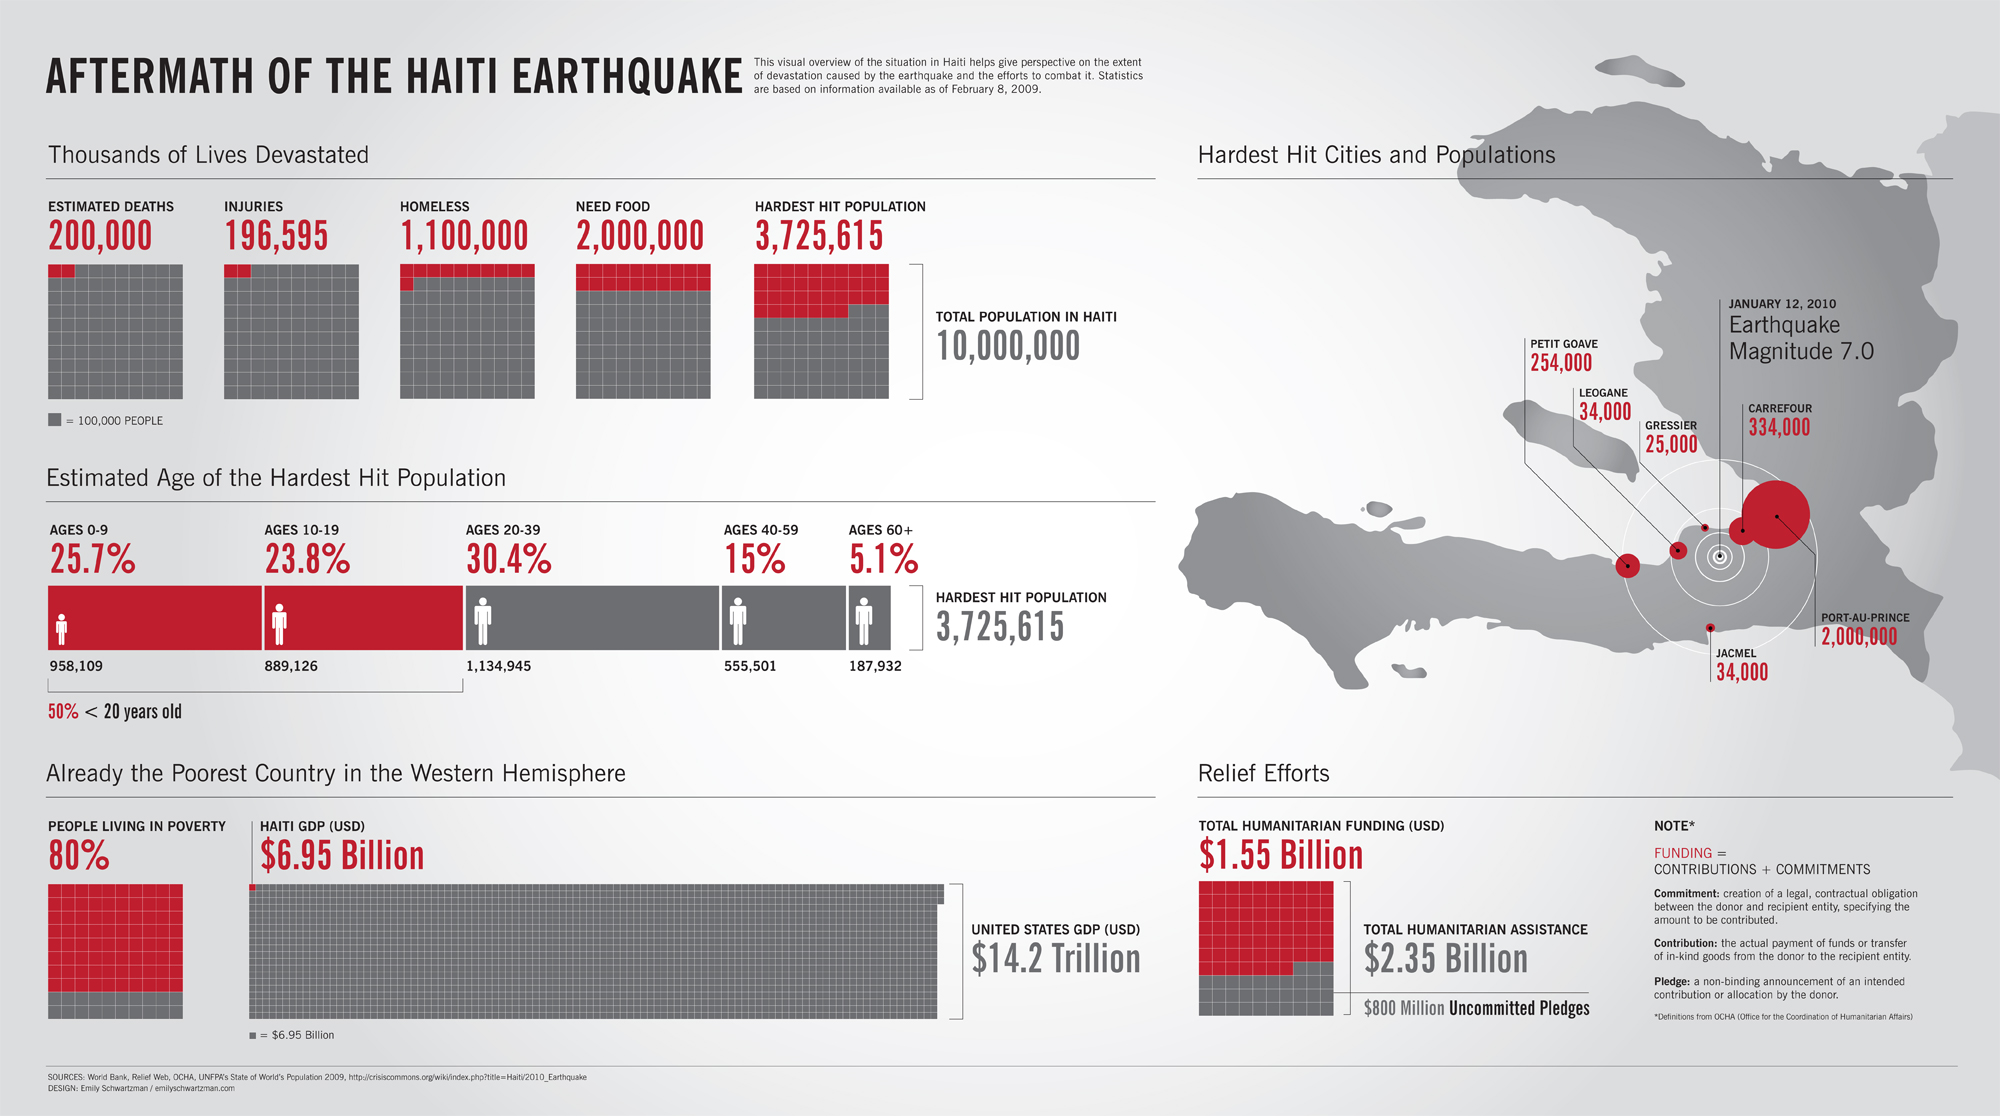 On January 12, 2010, a magnitude 7.0 Mw tremor struck the Haitian coast 10 miles from the capital of Port-au-Sovereign, initiating colossal harm, more than 200,000 demises and dislodging practically […]